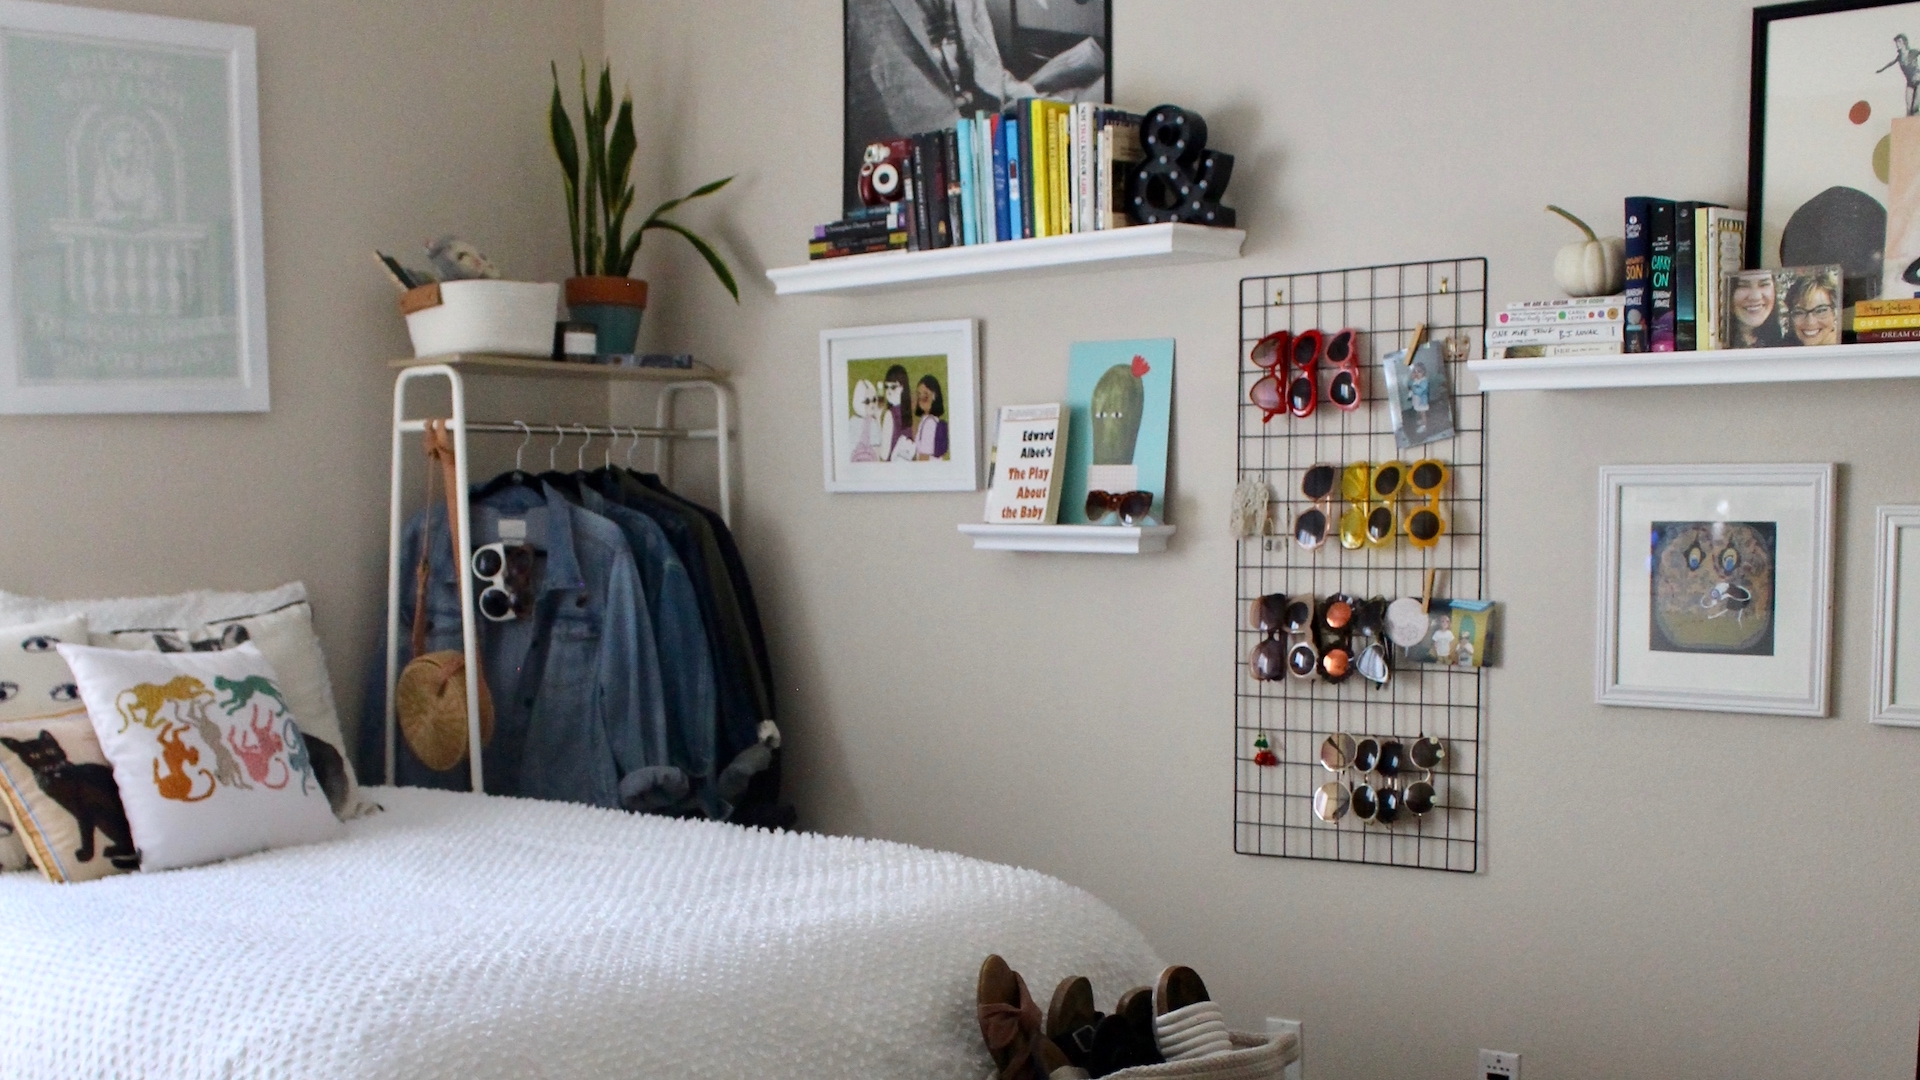 5 Easy Ways To Decorate A Small Bedroom And Make It Feel Like Home Stylecaster